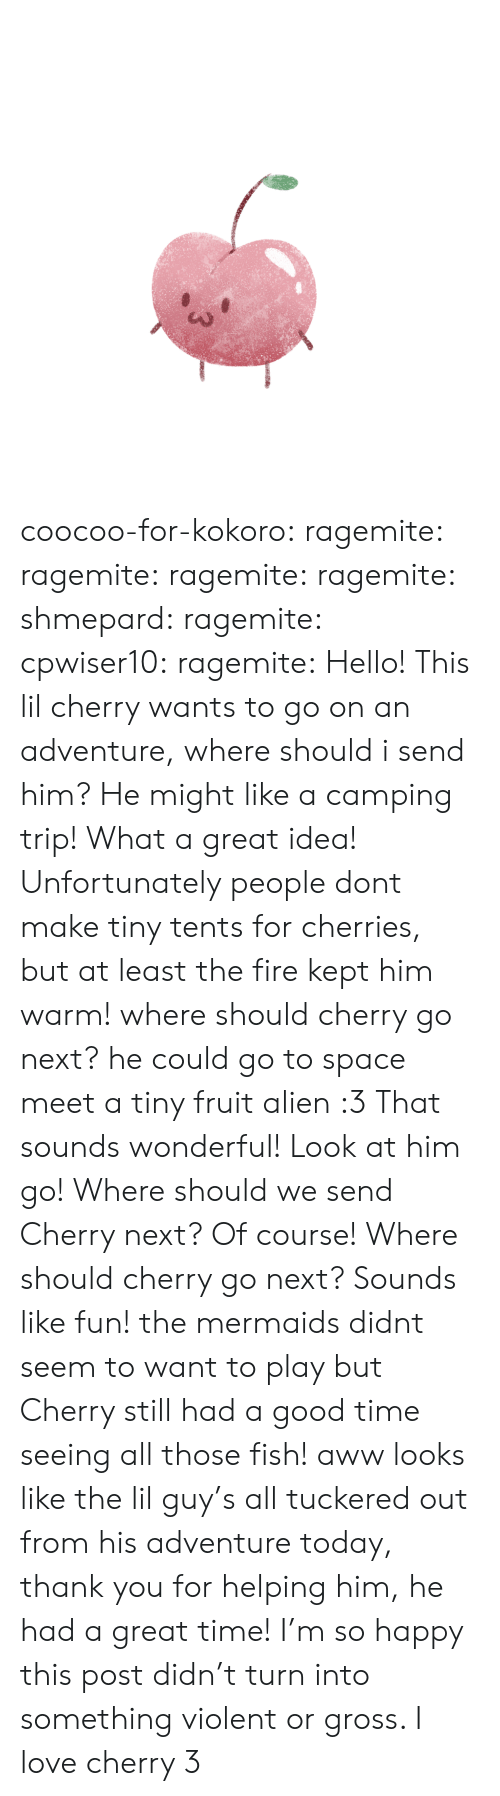 Had A Good Time: coocoo-for-kokoro:  ragemite:  ragemite:  ragemite:  ragemite:  shmepard:  ragemite:  cpwiser10:  ragemite:  Hello! This lil cherry wants to go on an adventure, where should i send him?  He might like a camping trip!  What a great idea!  Unfortunately people dont make tiny tents for cherries, but at least the fire kept him warm! where should cherry go next?  he could go to space  meet a tiny fruit alien :3  That sounds wonderful!  Look at him go! Where should we send Cherry next?   Of course!   Where should cherry go next?   Sounds like fun!  the mermaids didnt seem to want to play but Cherry still had a good time seeing all those fish!  aww looks like the lil guy's all tuckered out from his adventure today, thank you for helping him, he had a great time!      I'm so happy this post didn't turn into something violent or gross. I love cherry 3